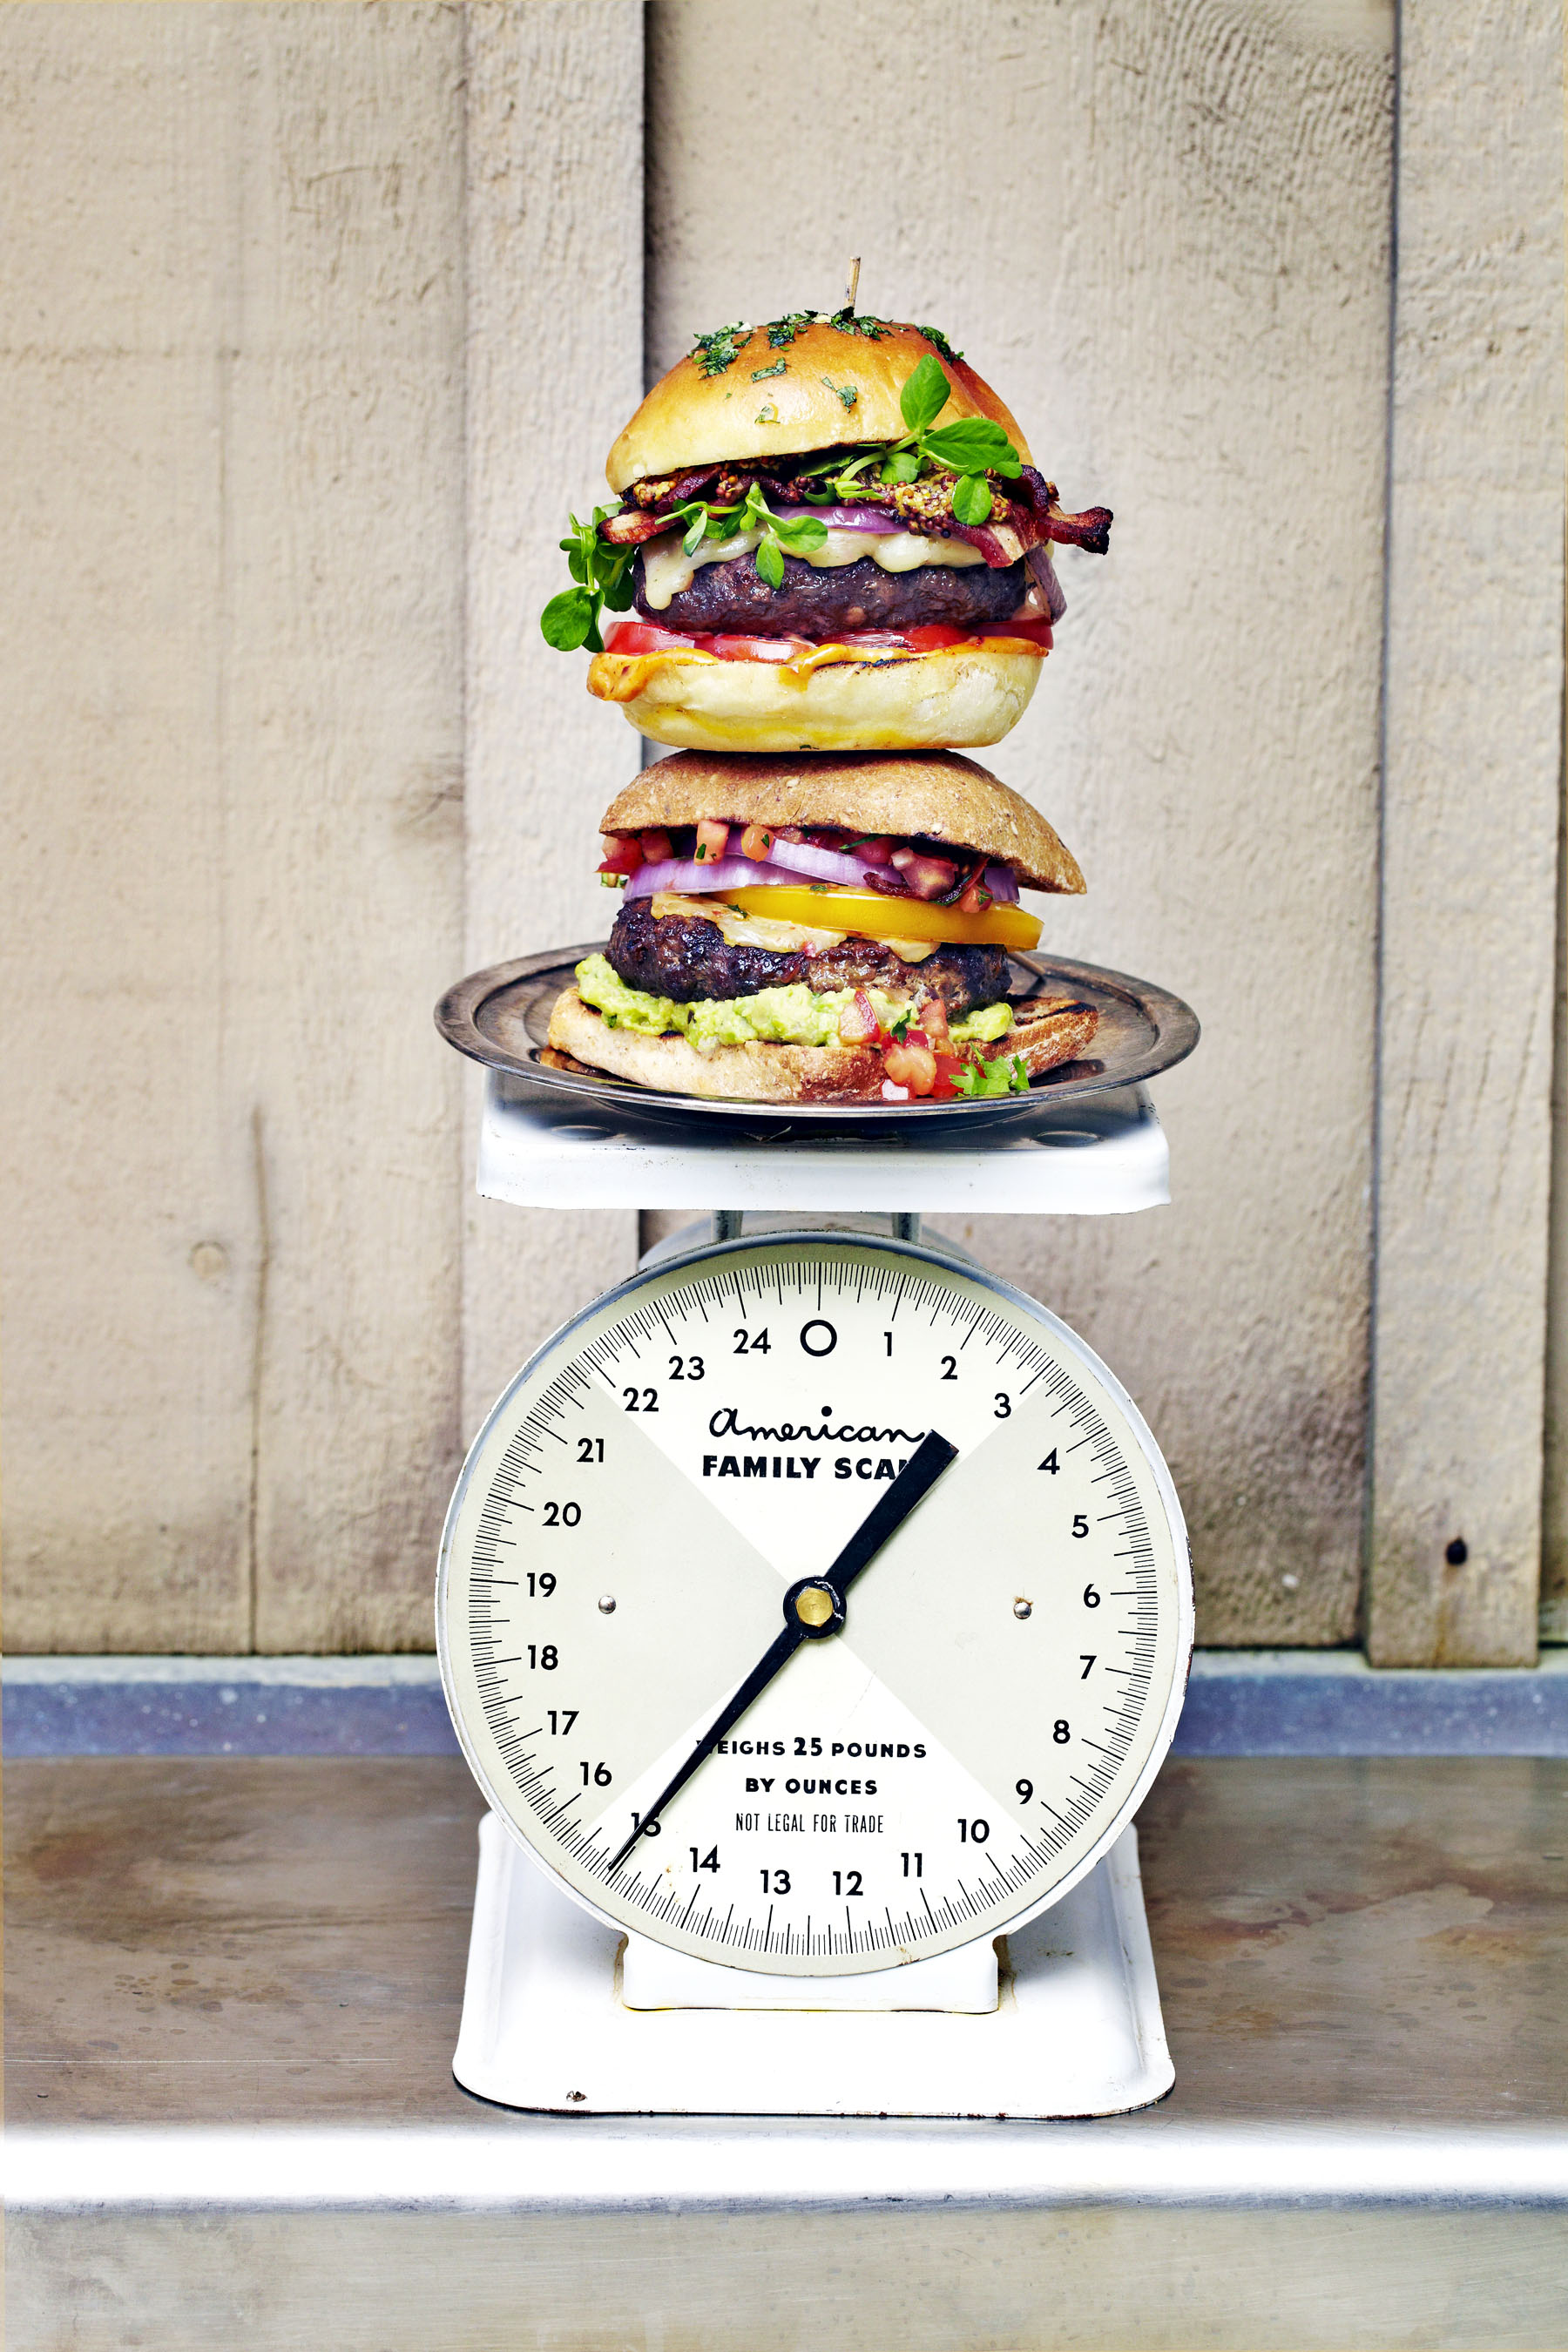 Burgers stacked on a scale.jpg